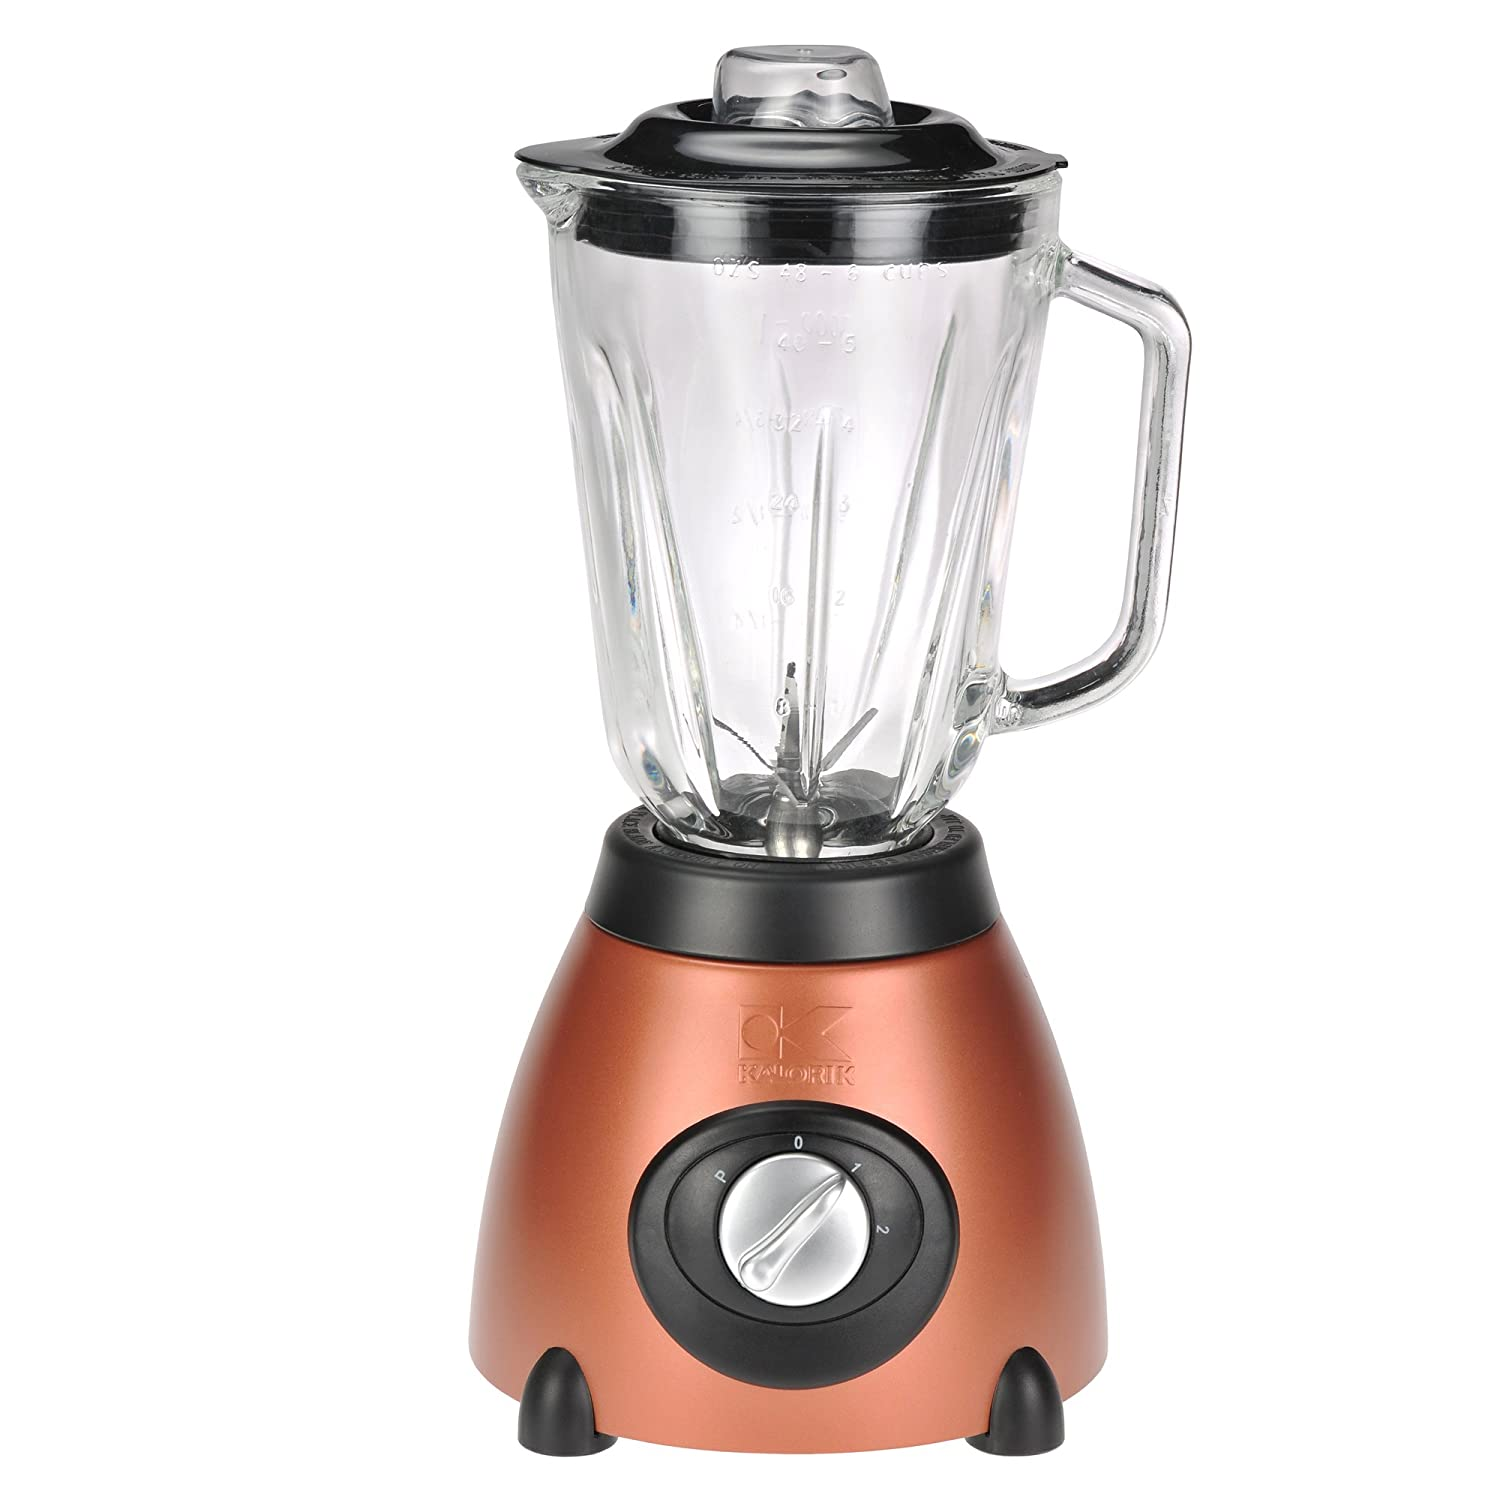 Amazon.com: Kalorik 500-Watt 2-Speed Countertop Blender with 50-Oz. Glass  Jar, Aztec Copper: Electric Countertop Blenders: Kitchen & Dining